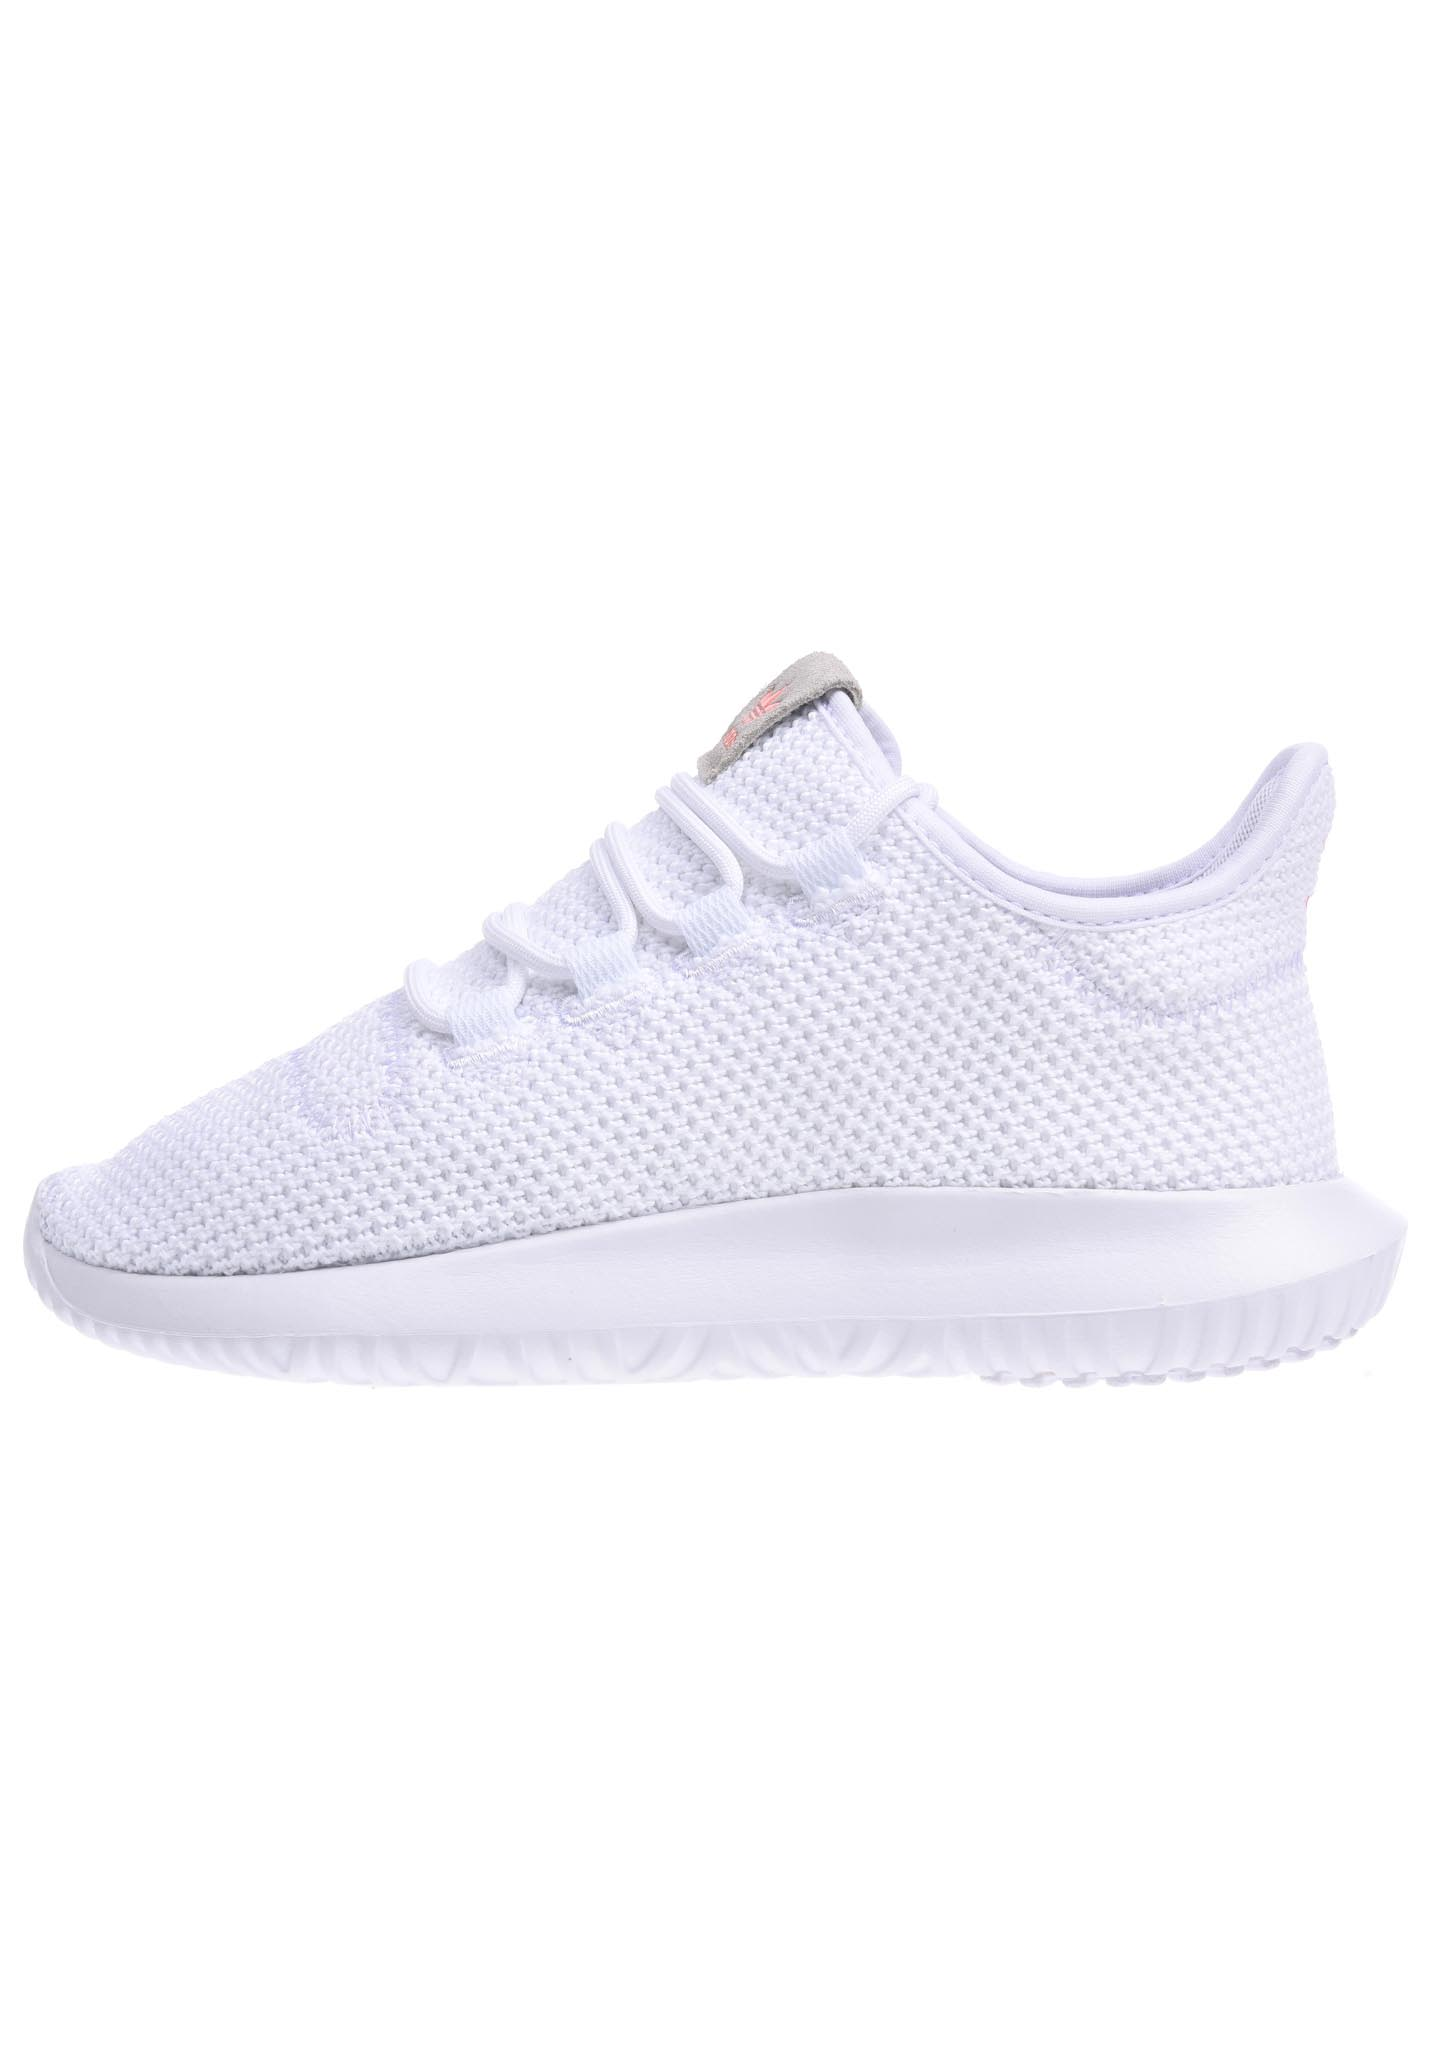 ADIDAS ORIGINALS Tubular Shadow - Sneakers for Women - White - Planet Sports 4c713d50c